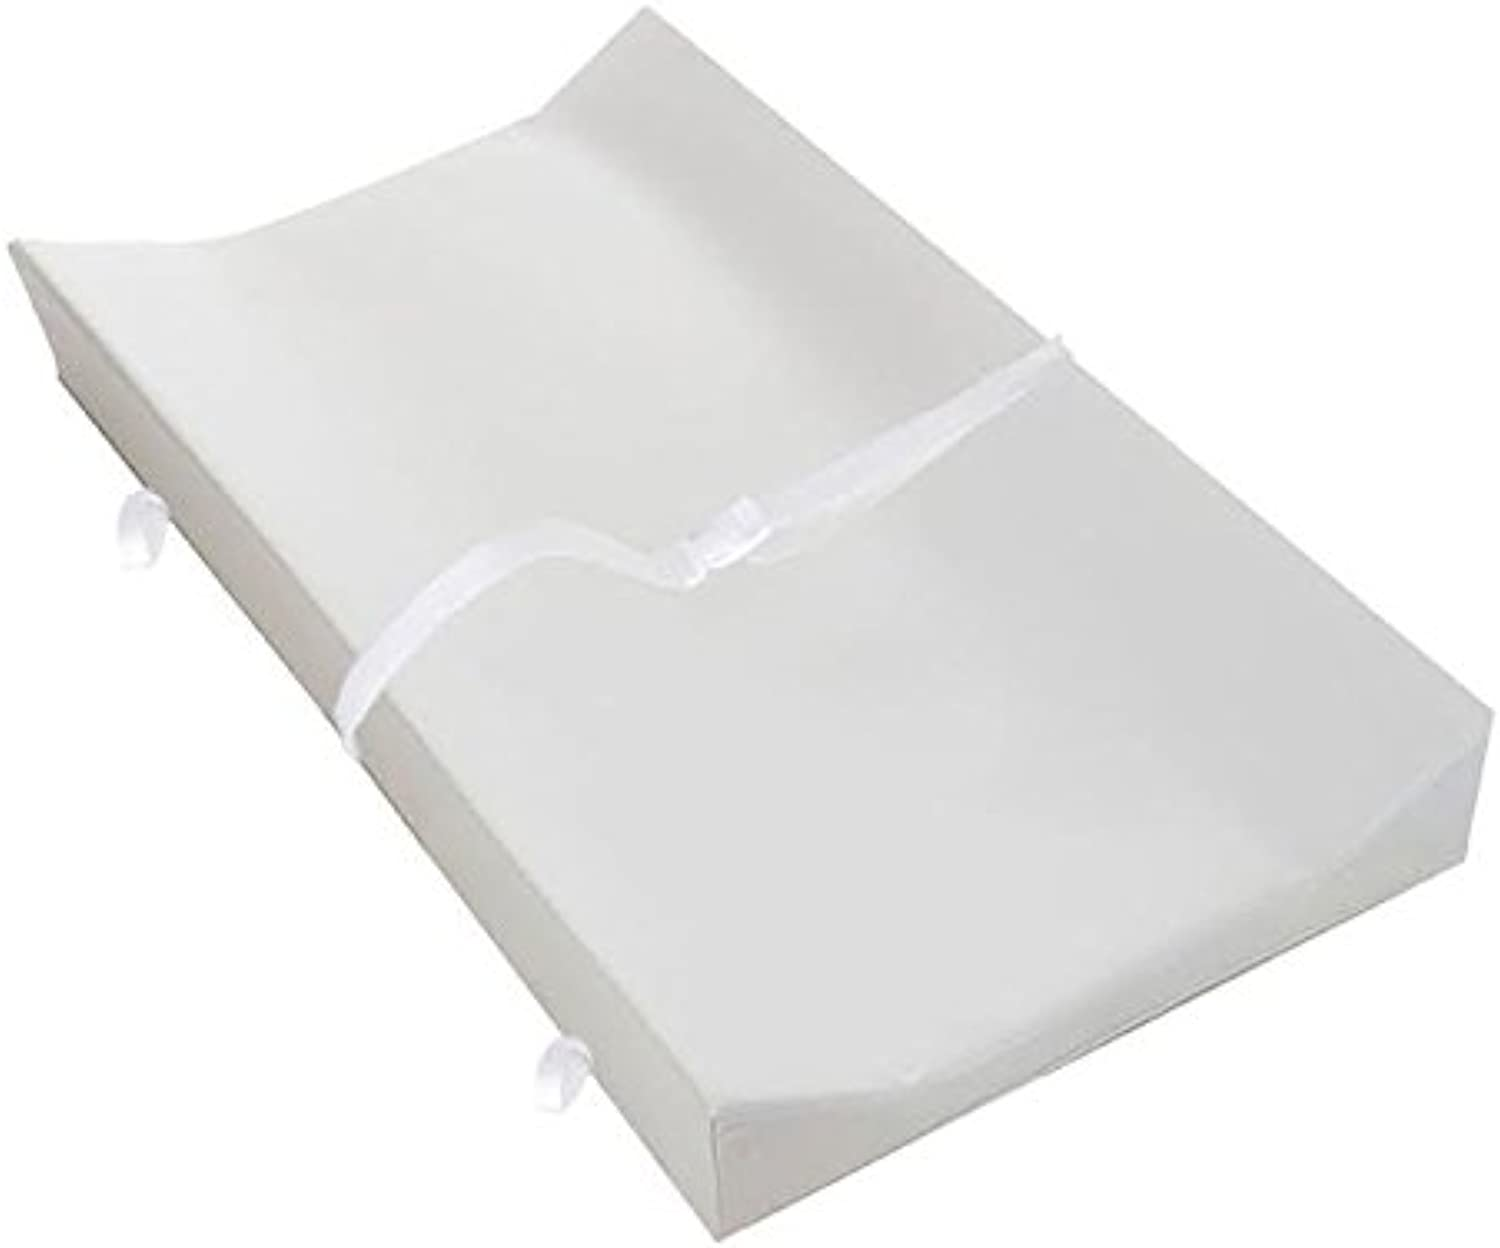 Moonlight Slumber Little Dreamer Contour Changing Table Pad, 32